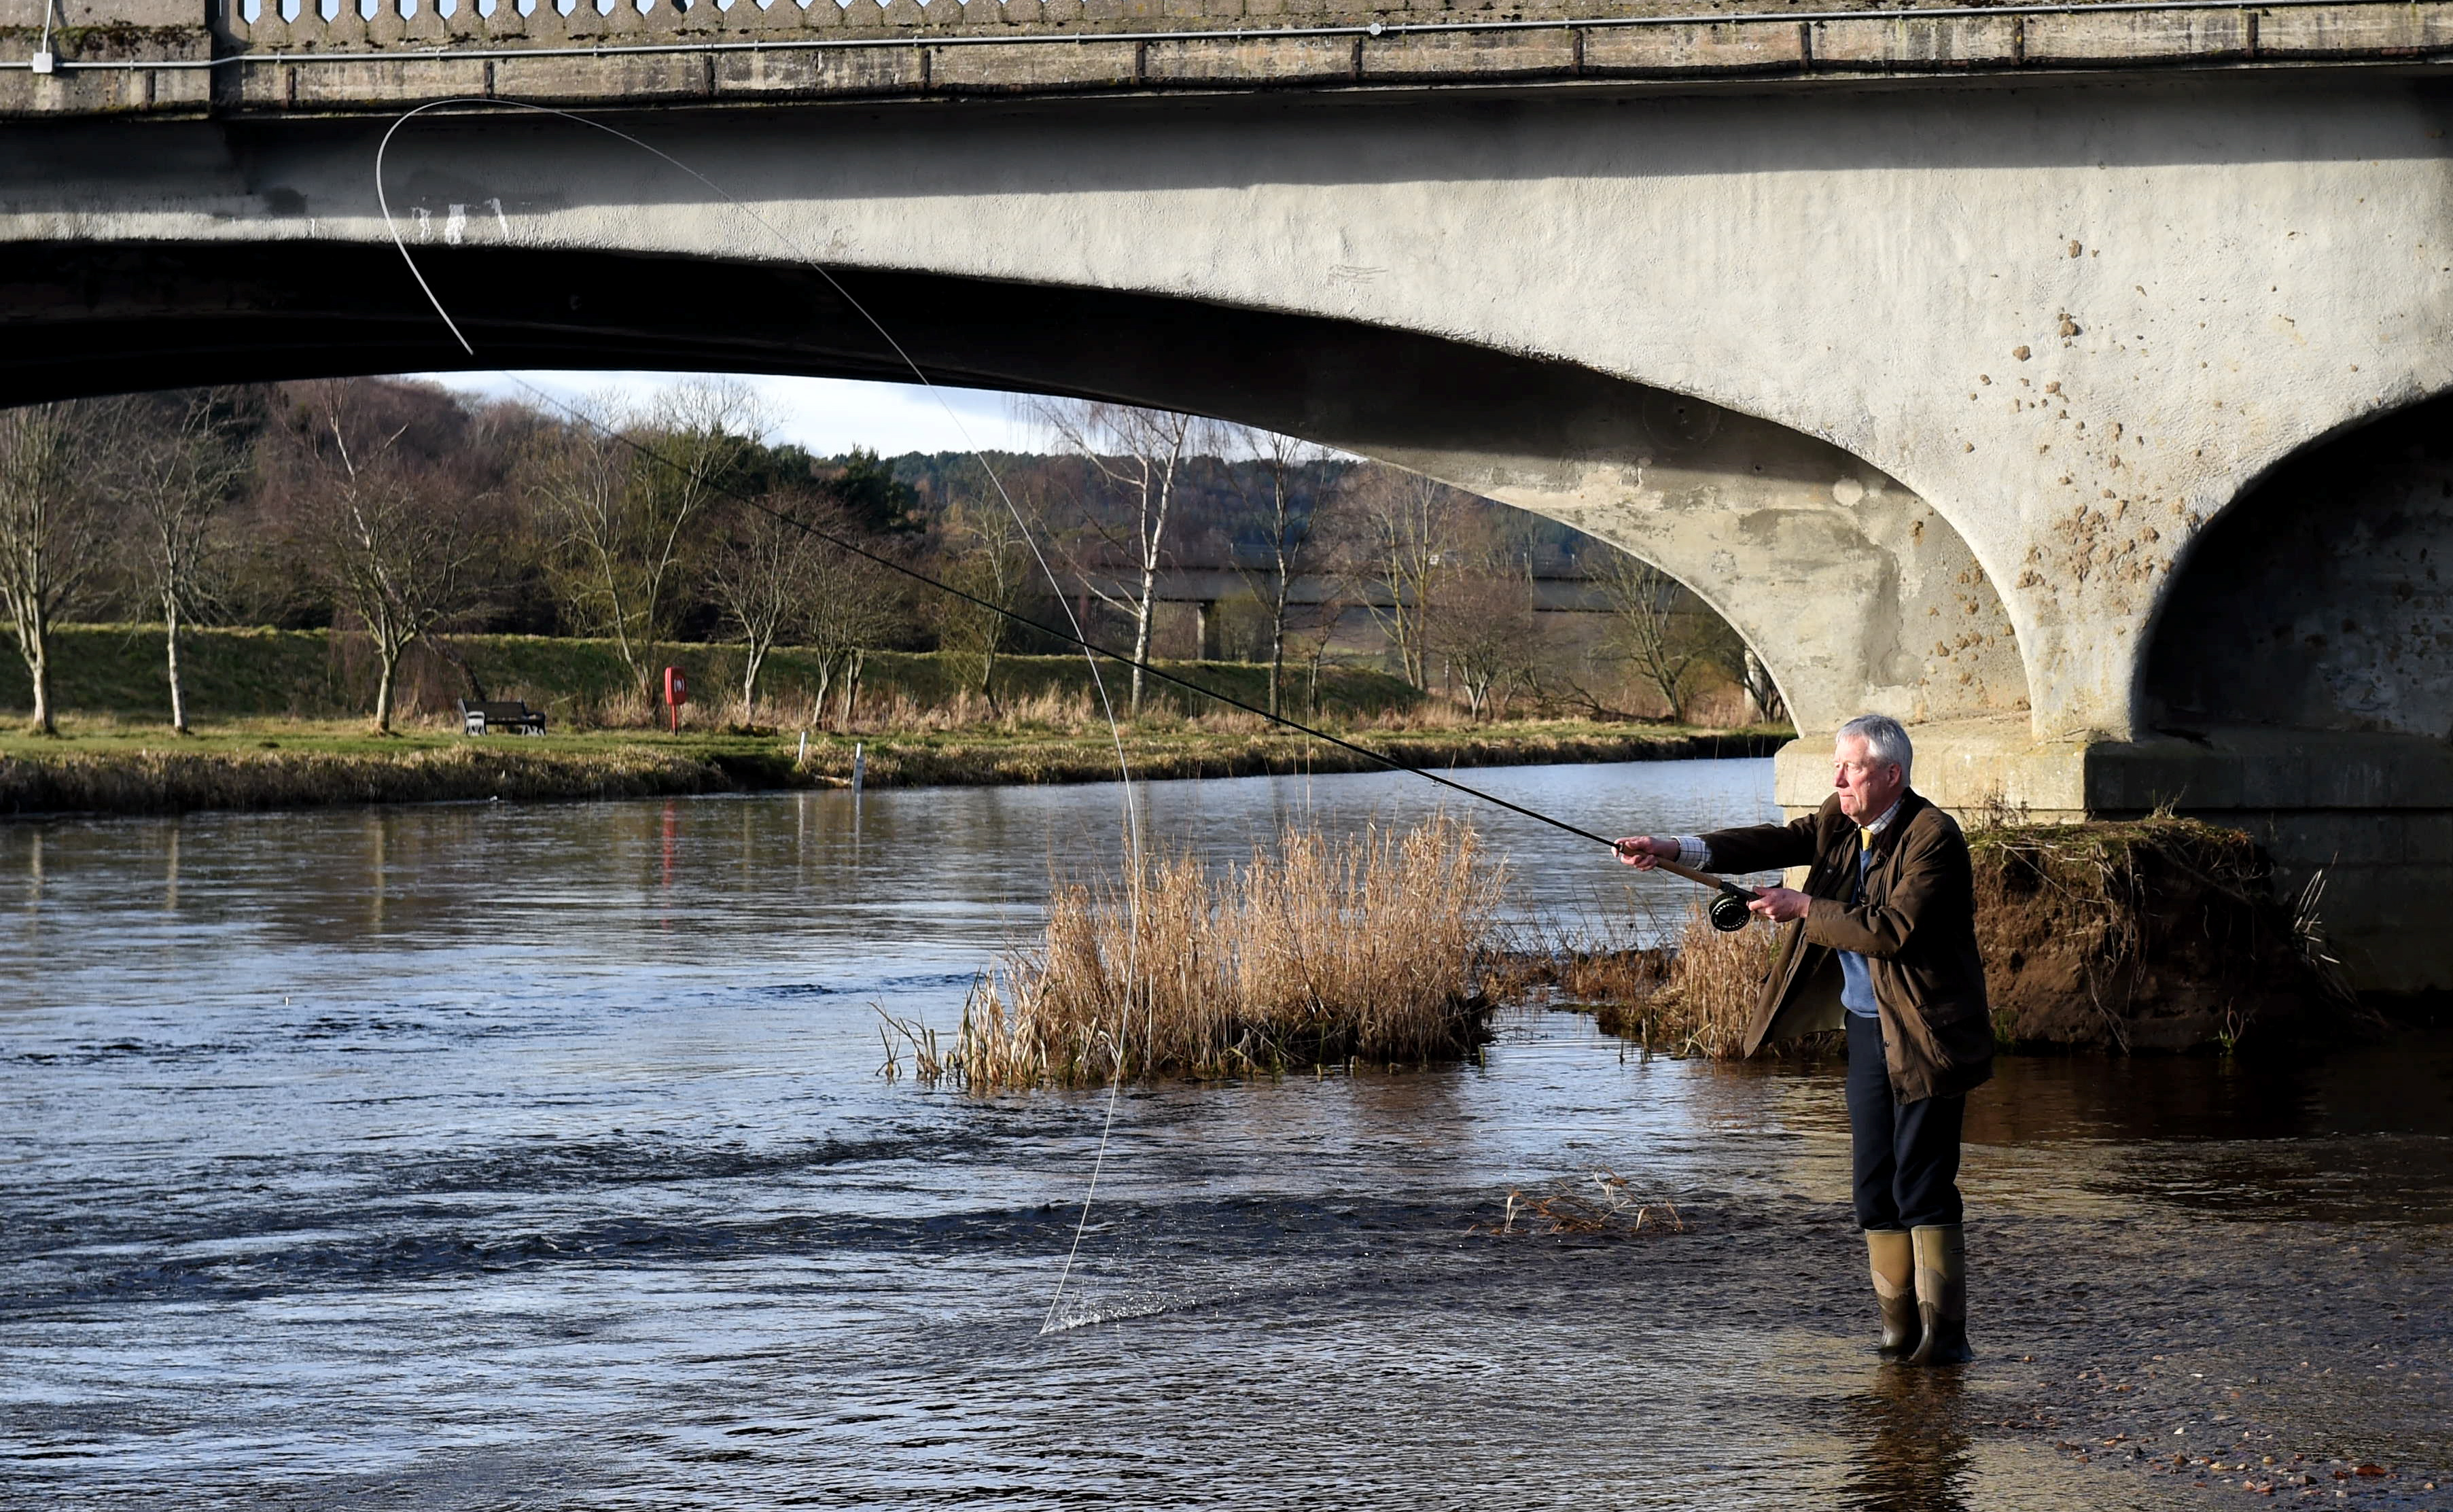 Aberdeenshire Provost Bill Howatson makes the first official cast of the season at Port Elphinstone.